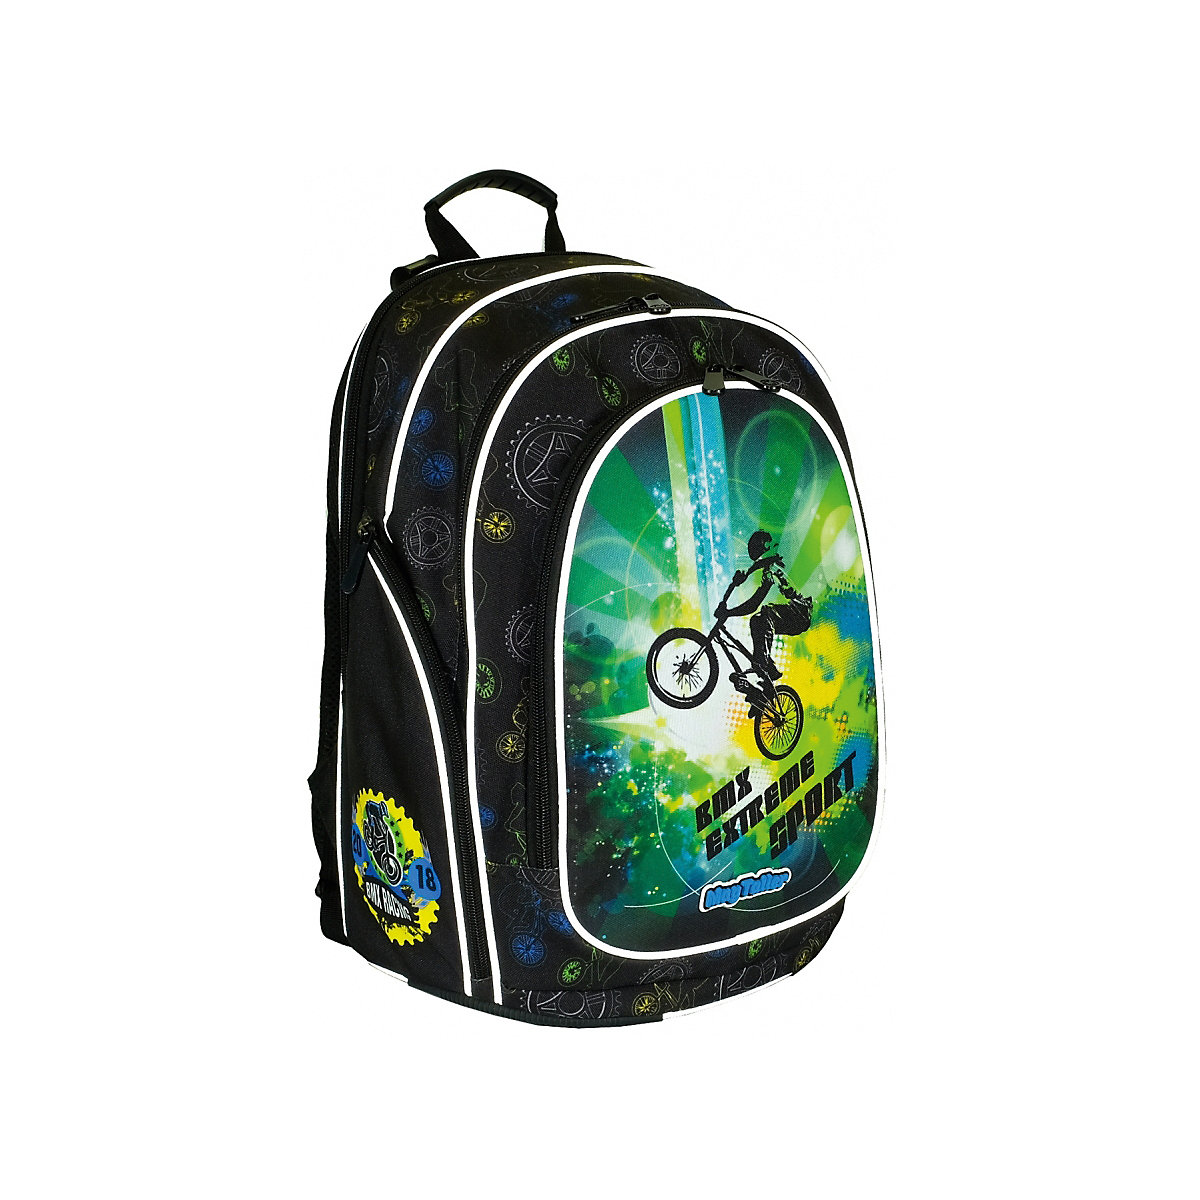 School Bags MAGTALLER 8316084 schoolbag backpack orthopedic bag for boy and girl animals flowers men business backpacks usb charging design school backpack for teenagers laptop mochila anti theft bags for trip drop shipping